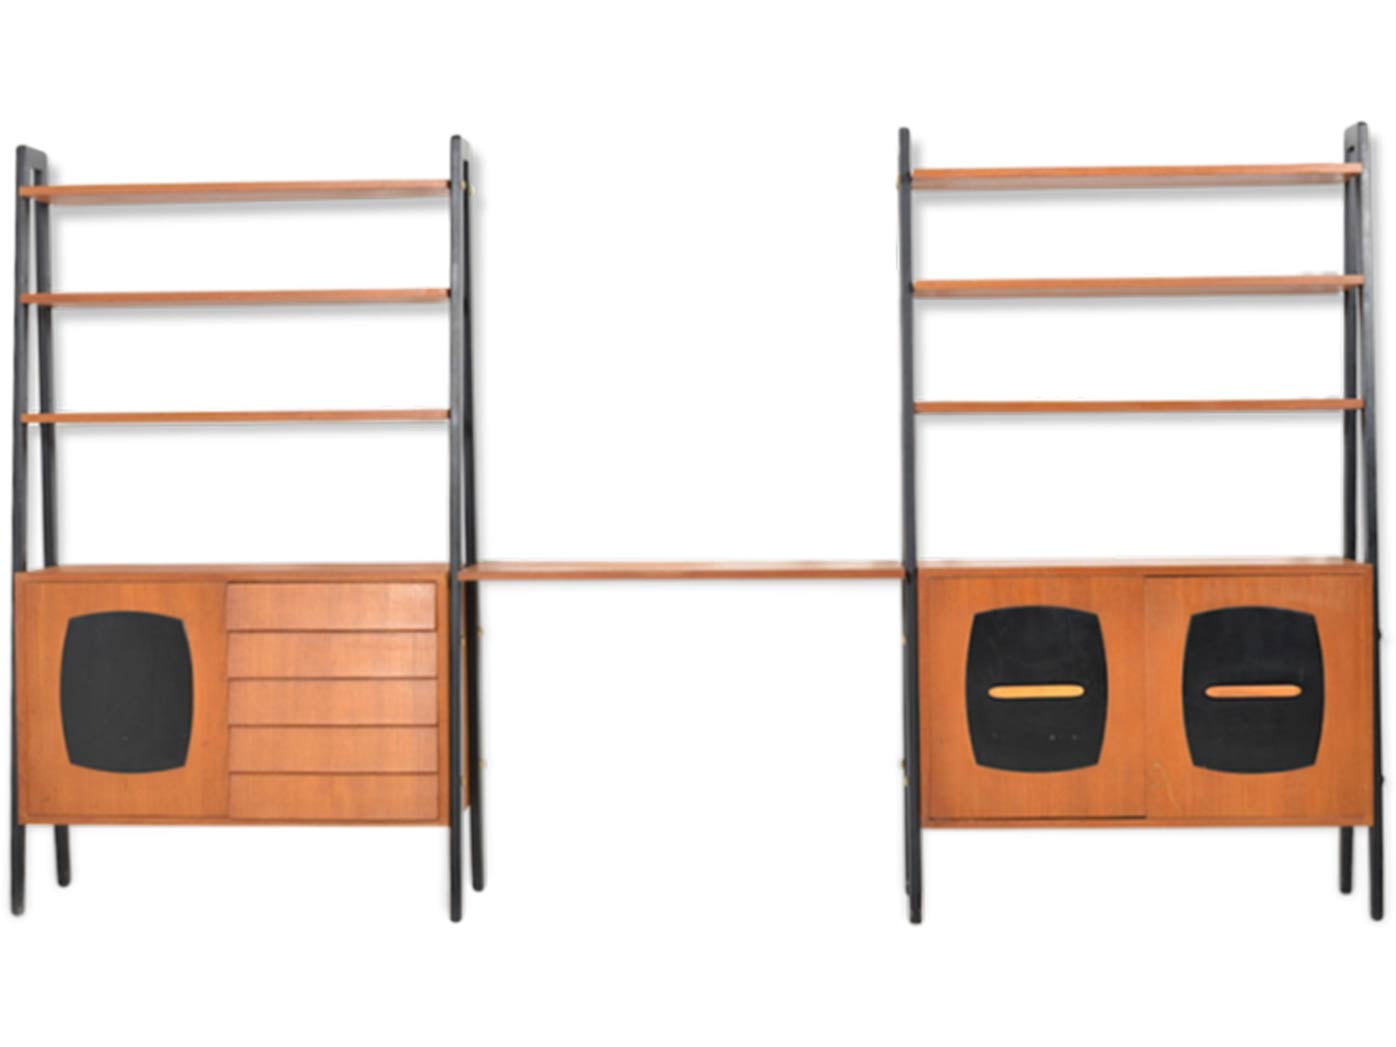 Vintage Ikea Ikea Vintage Furniture Is Trending At Auctions  9Homes